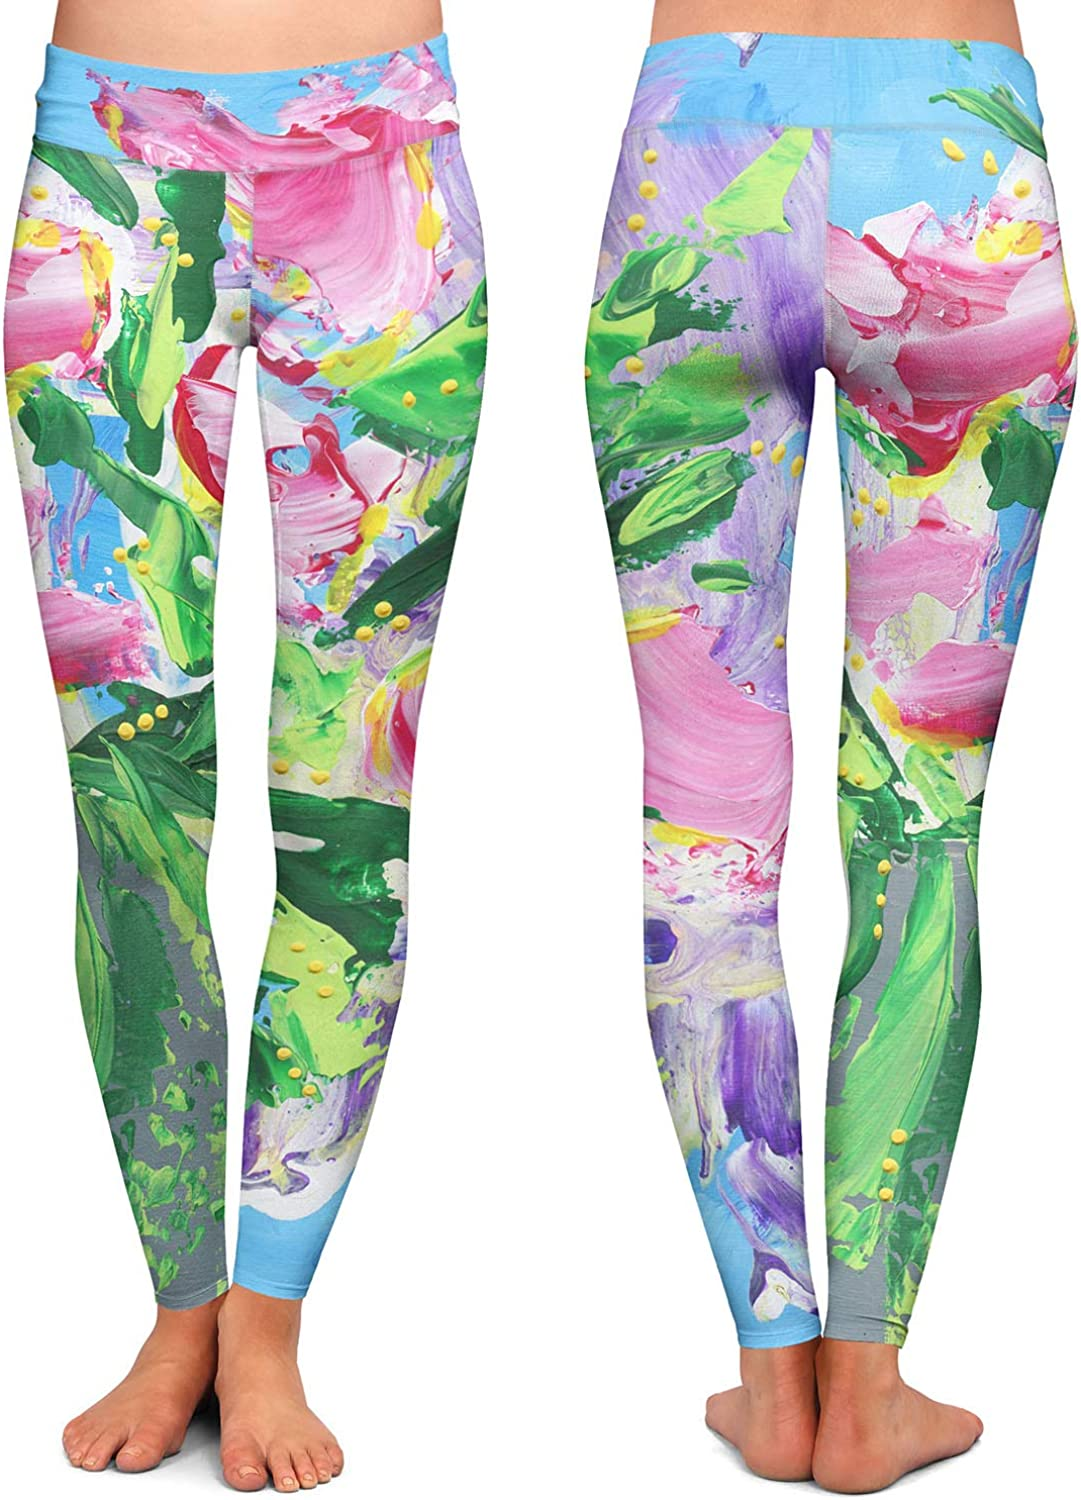 Athletic Yoga Leggings from DiaNoche Designs by Shay Livenspargar Tulip Love